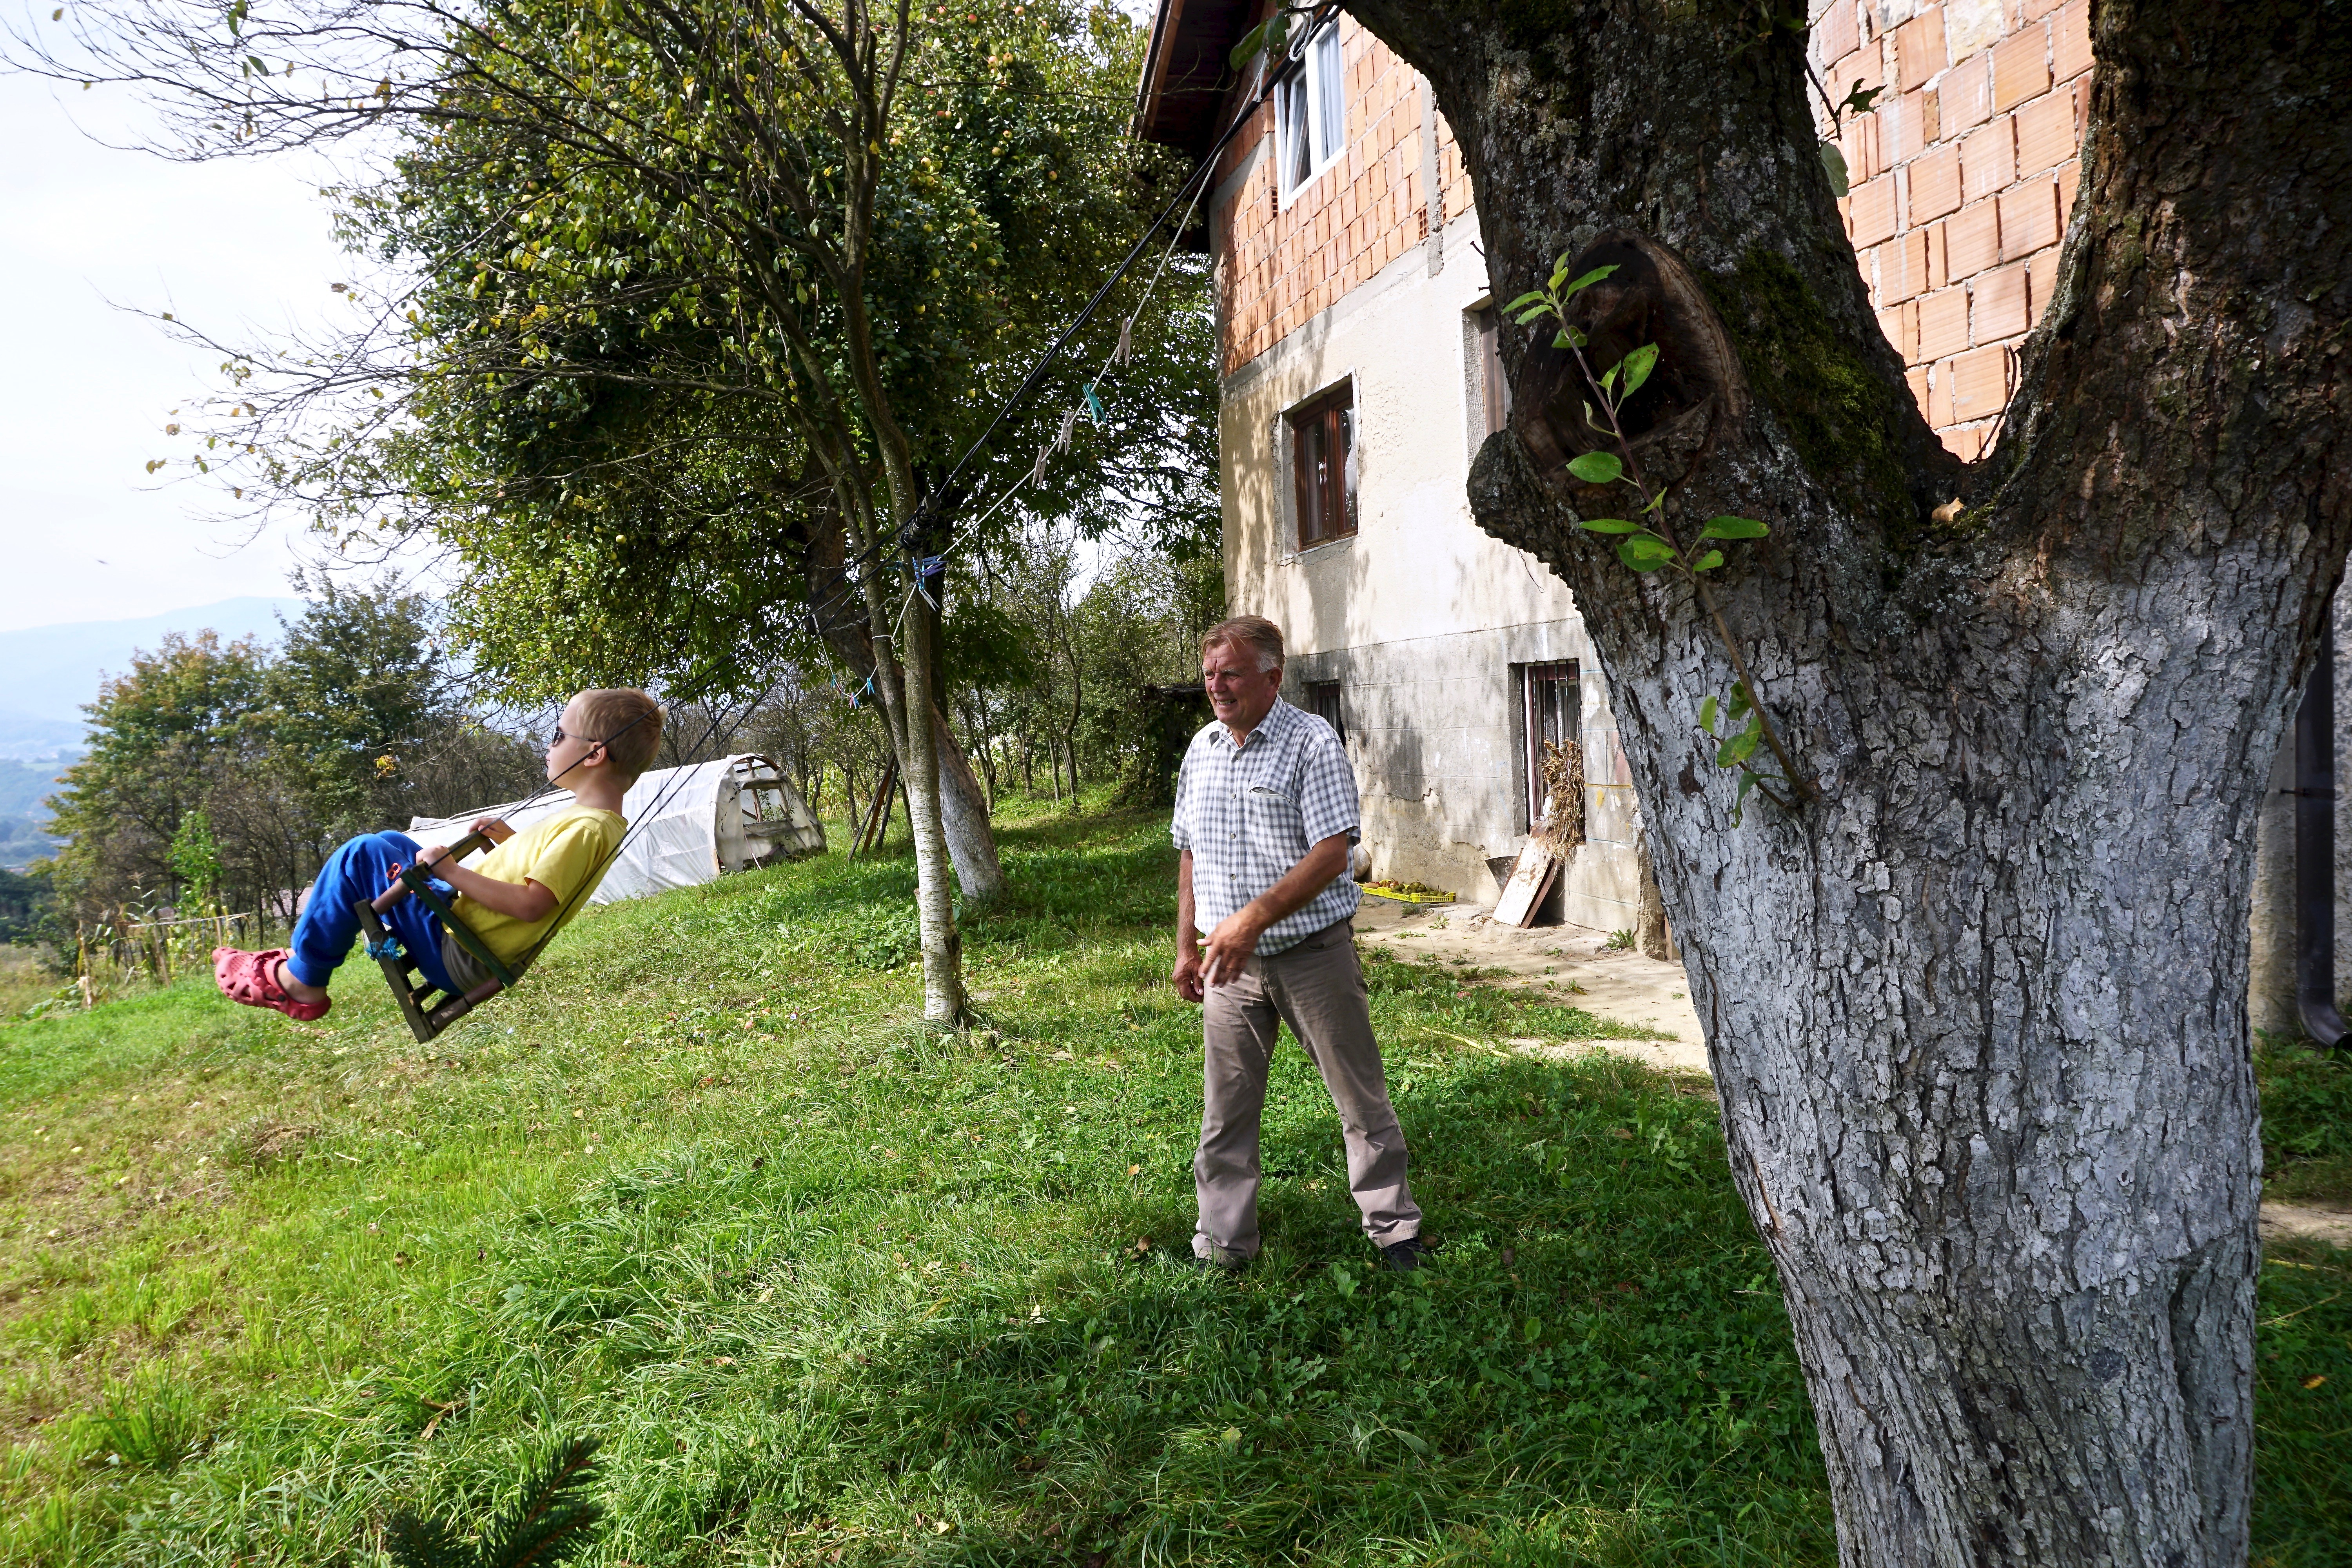 Huso Ahmići: Huso Ahmići, aged 72, plays with his grandson in the garden of the family home that was razed during a Croatian 'ethnic cleansing' assault on the villages of the Lašva Valley in 1993. His parents died when the house was razed. H...